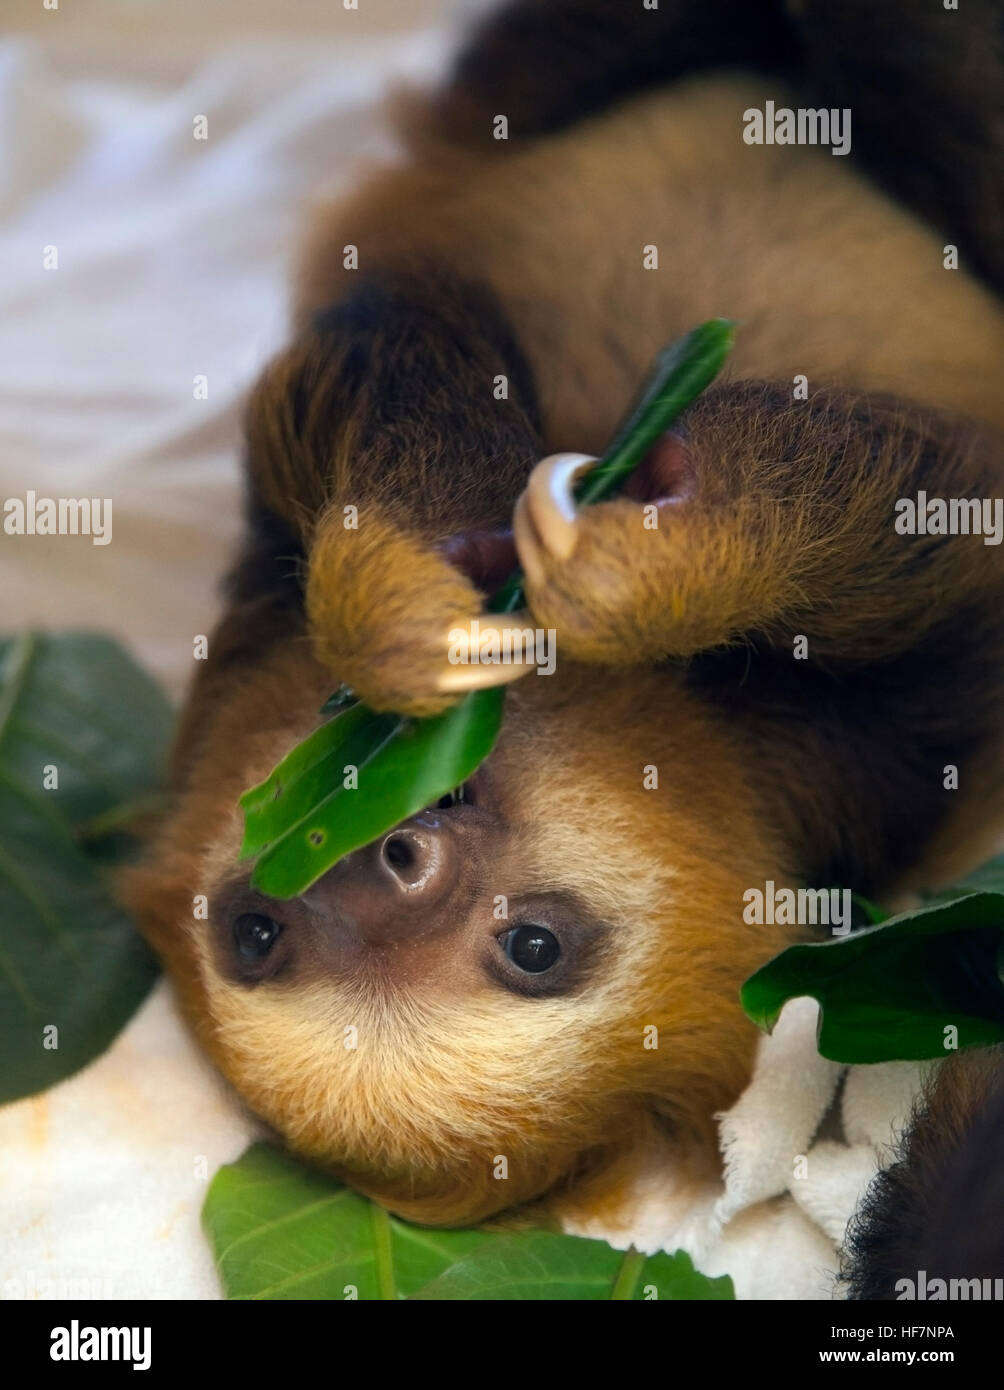 Baby orphaned Hoffmann's Two-toed Sloth (Choloepus hoffmanni) feeding on leaves at the Sloth Sanctuary - Stock Image